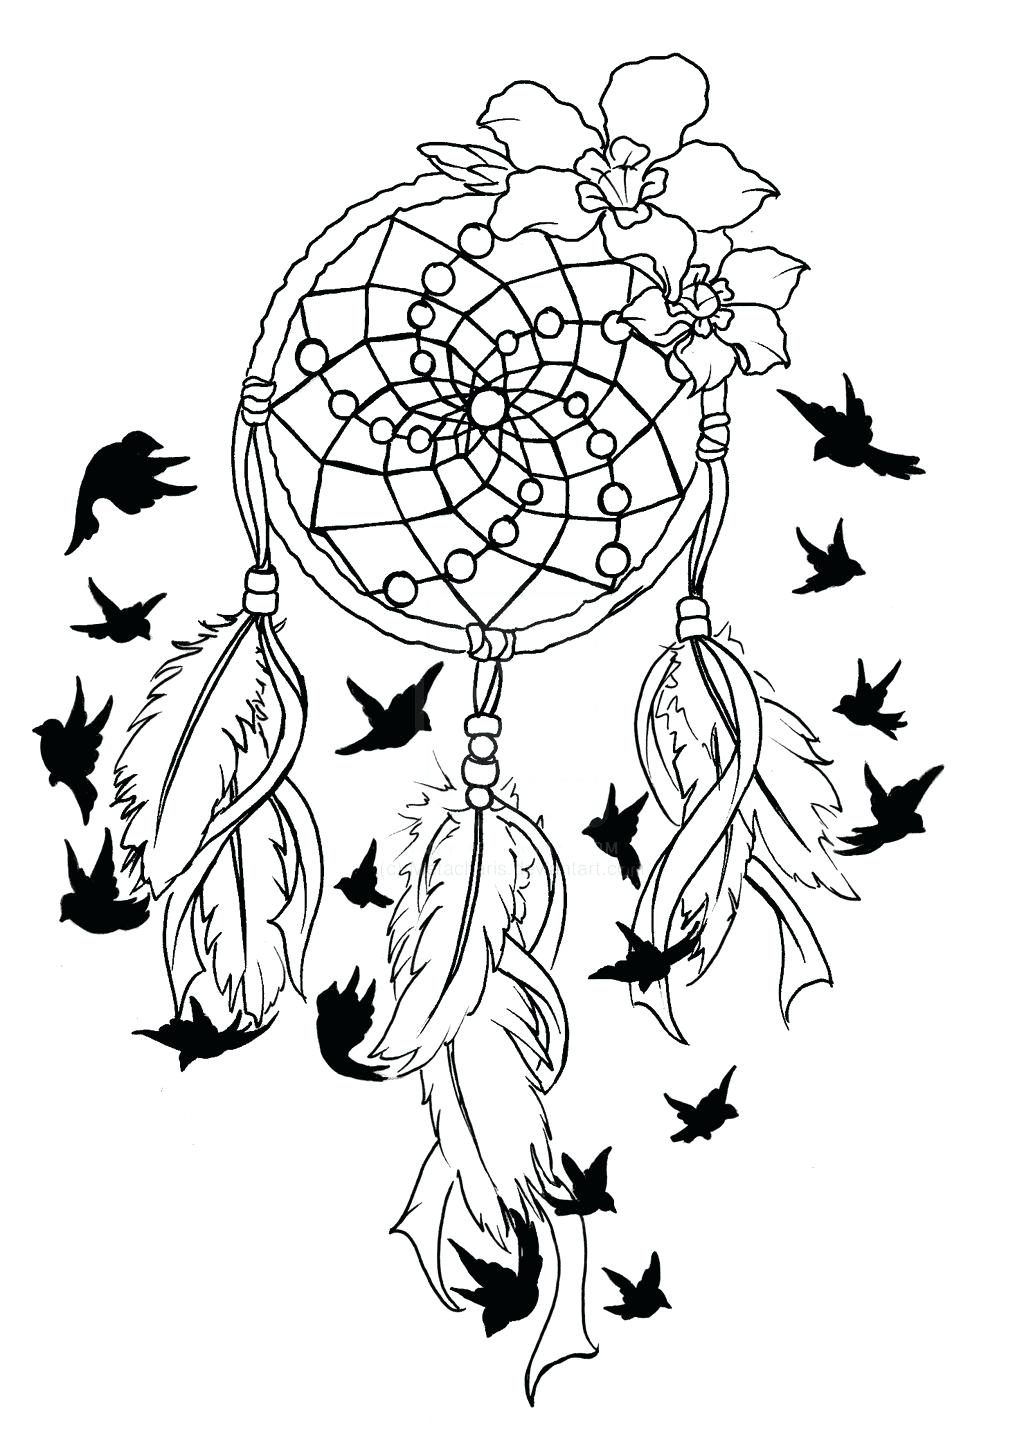 Coloring Page Breast Cancer Coloring Pages Ribbon with Bird Tattoo Printable Of Cancer Ribbon Drawing at Getdrawings to Print